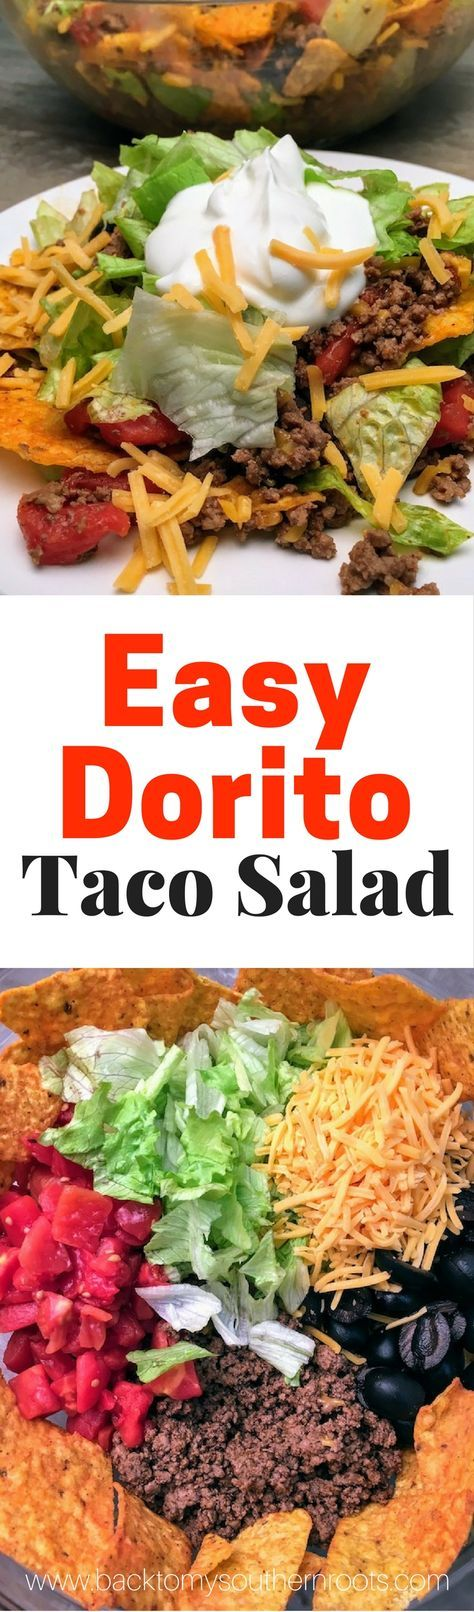 Easy Dorito Taco Salad Recipe is an easy dinner to make. It features spicy taco flavors that will please a crowd. Easy Dorito Taco Salad is perfect for a family supper, a tailgating party, football games, or any holiday. #dorito #taco #salad #supper #dinner